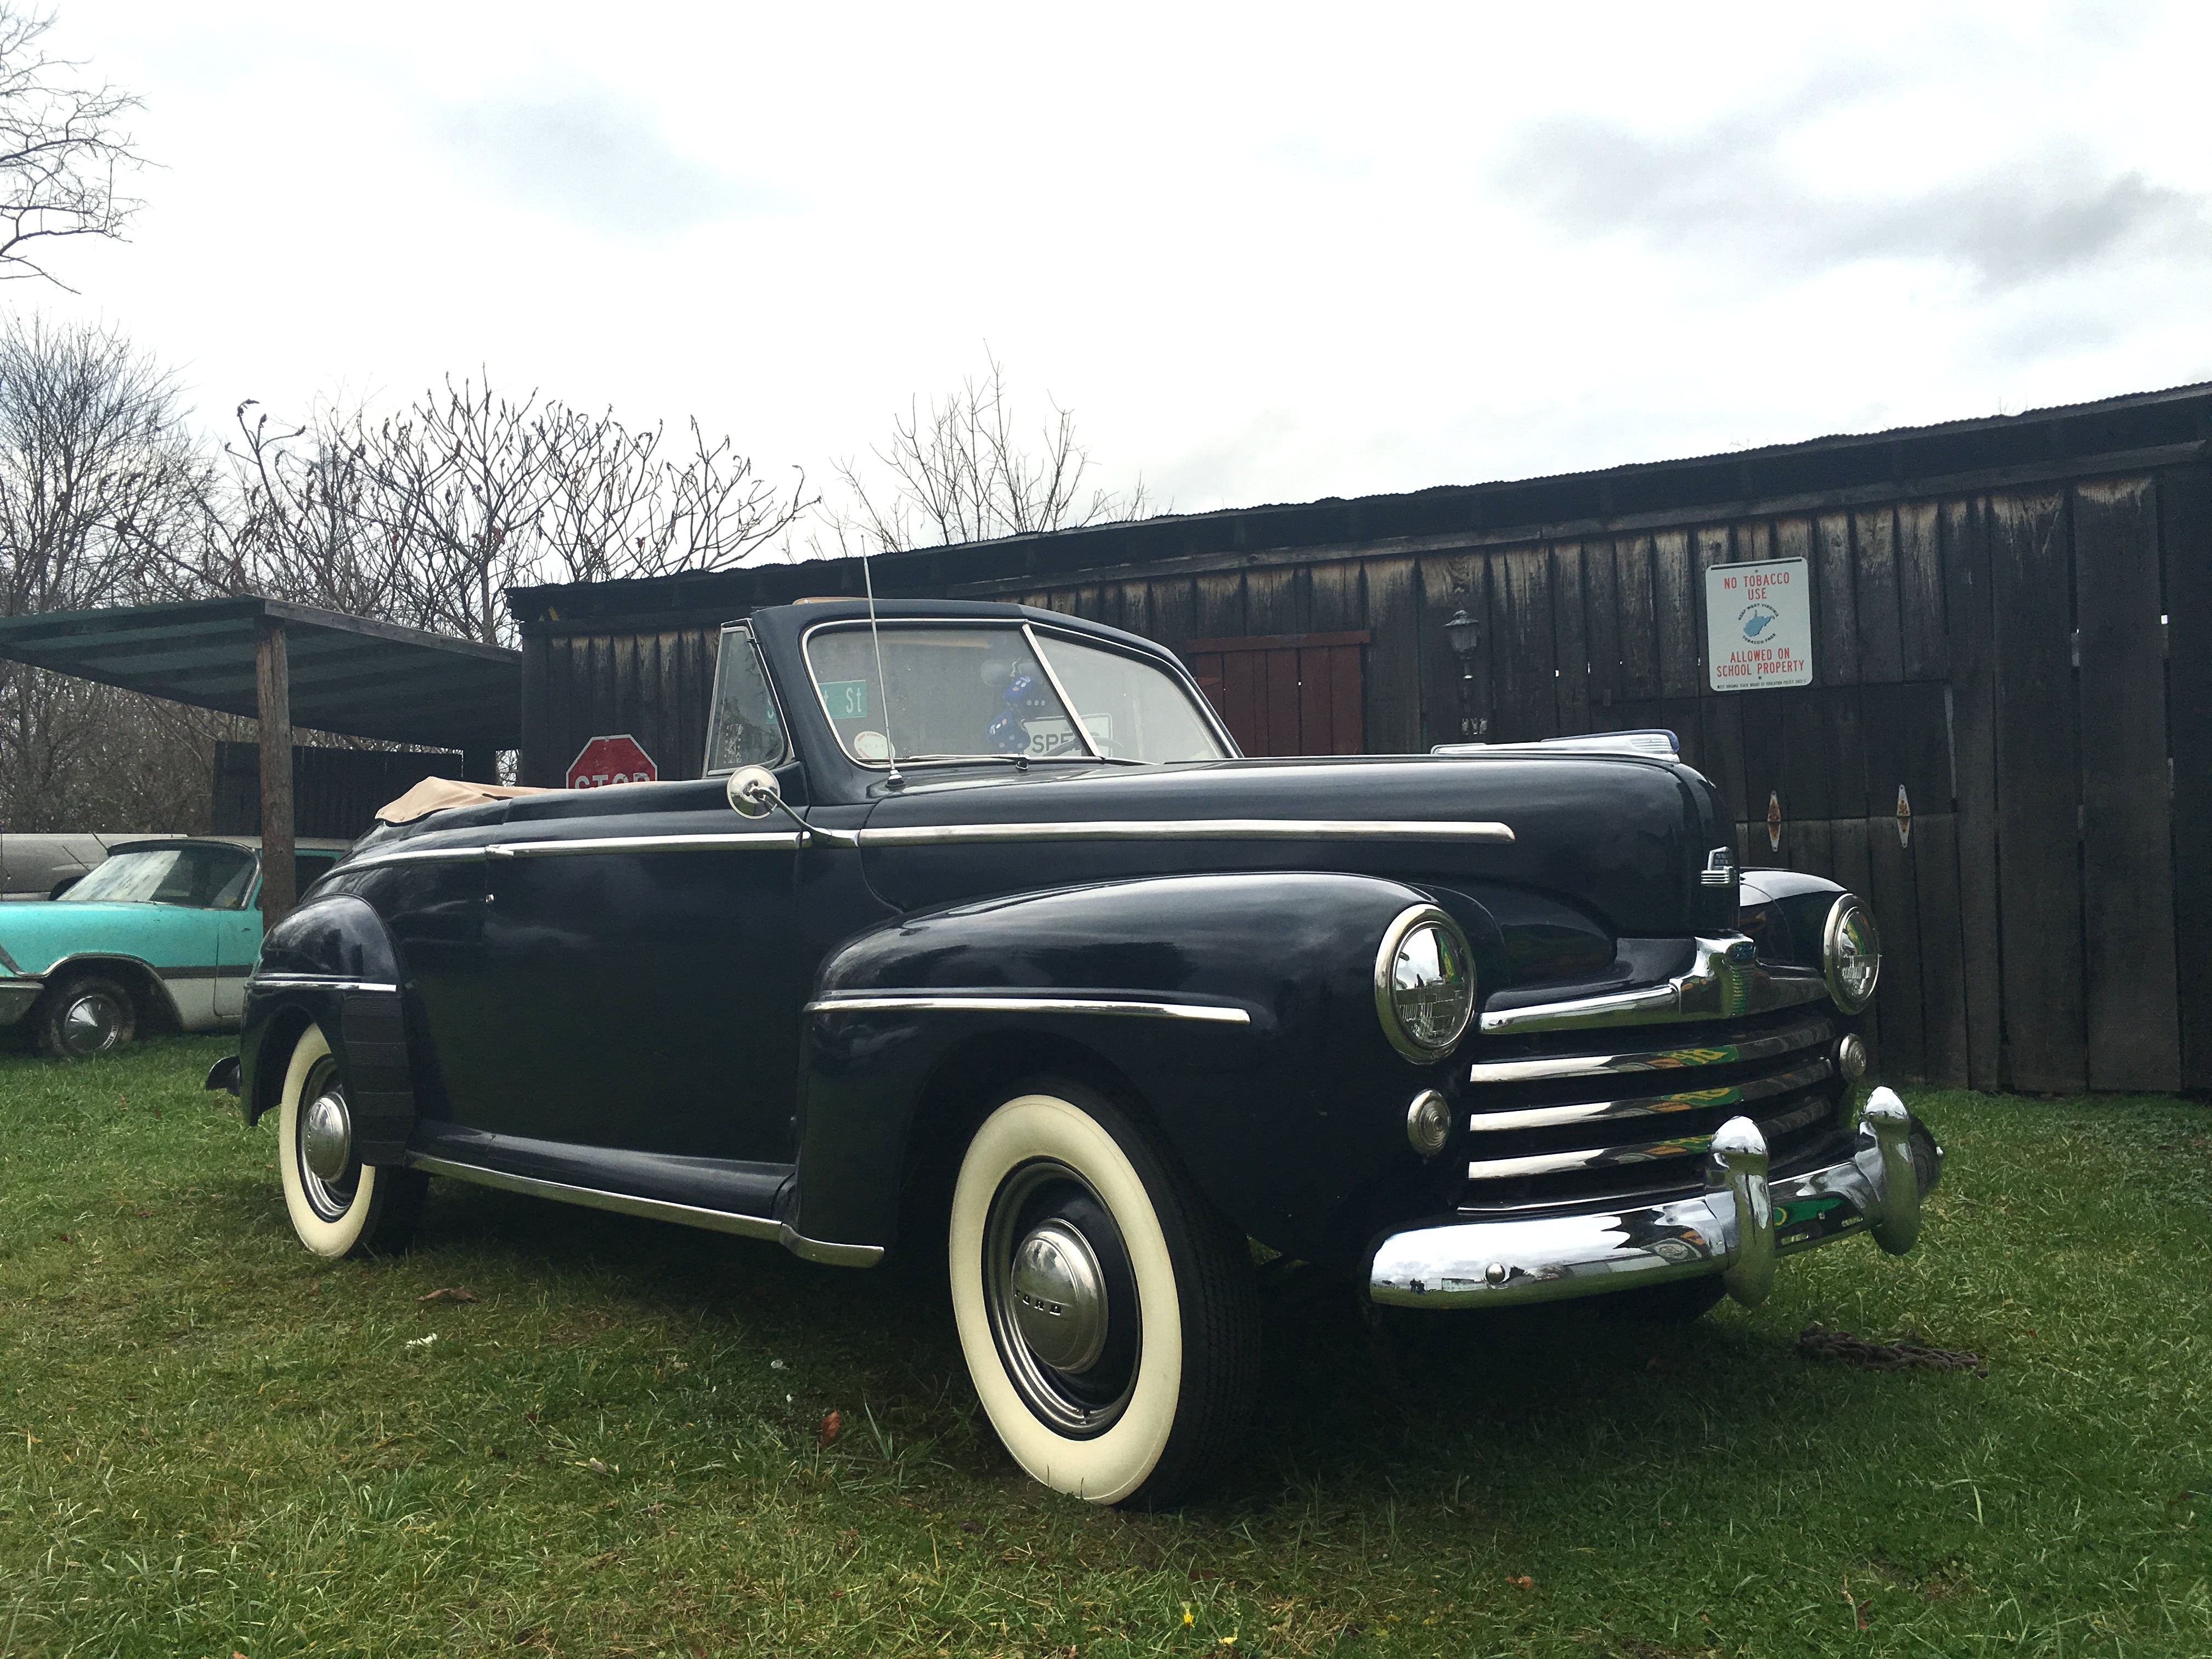 For Sale 1948 Ford Super Deluxe Convertible Automobiles And Parts Buy Sell Antique Automobile Club Of America Discussion Forums